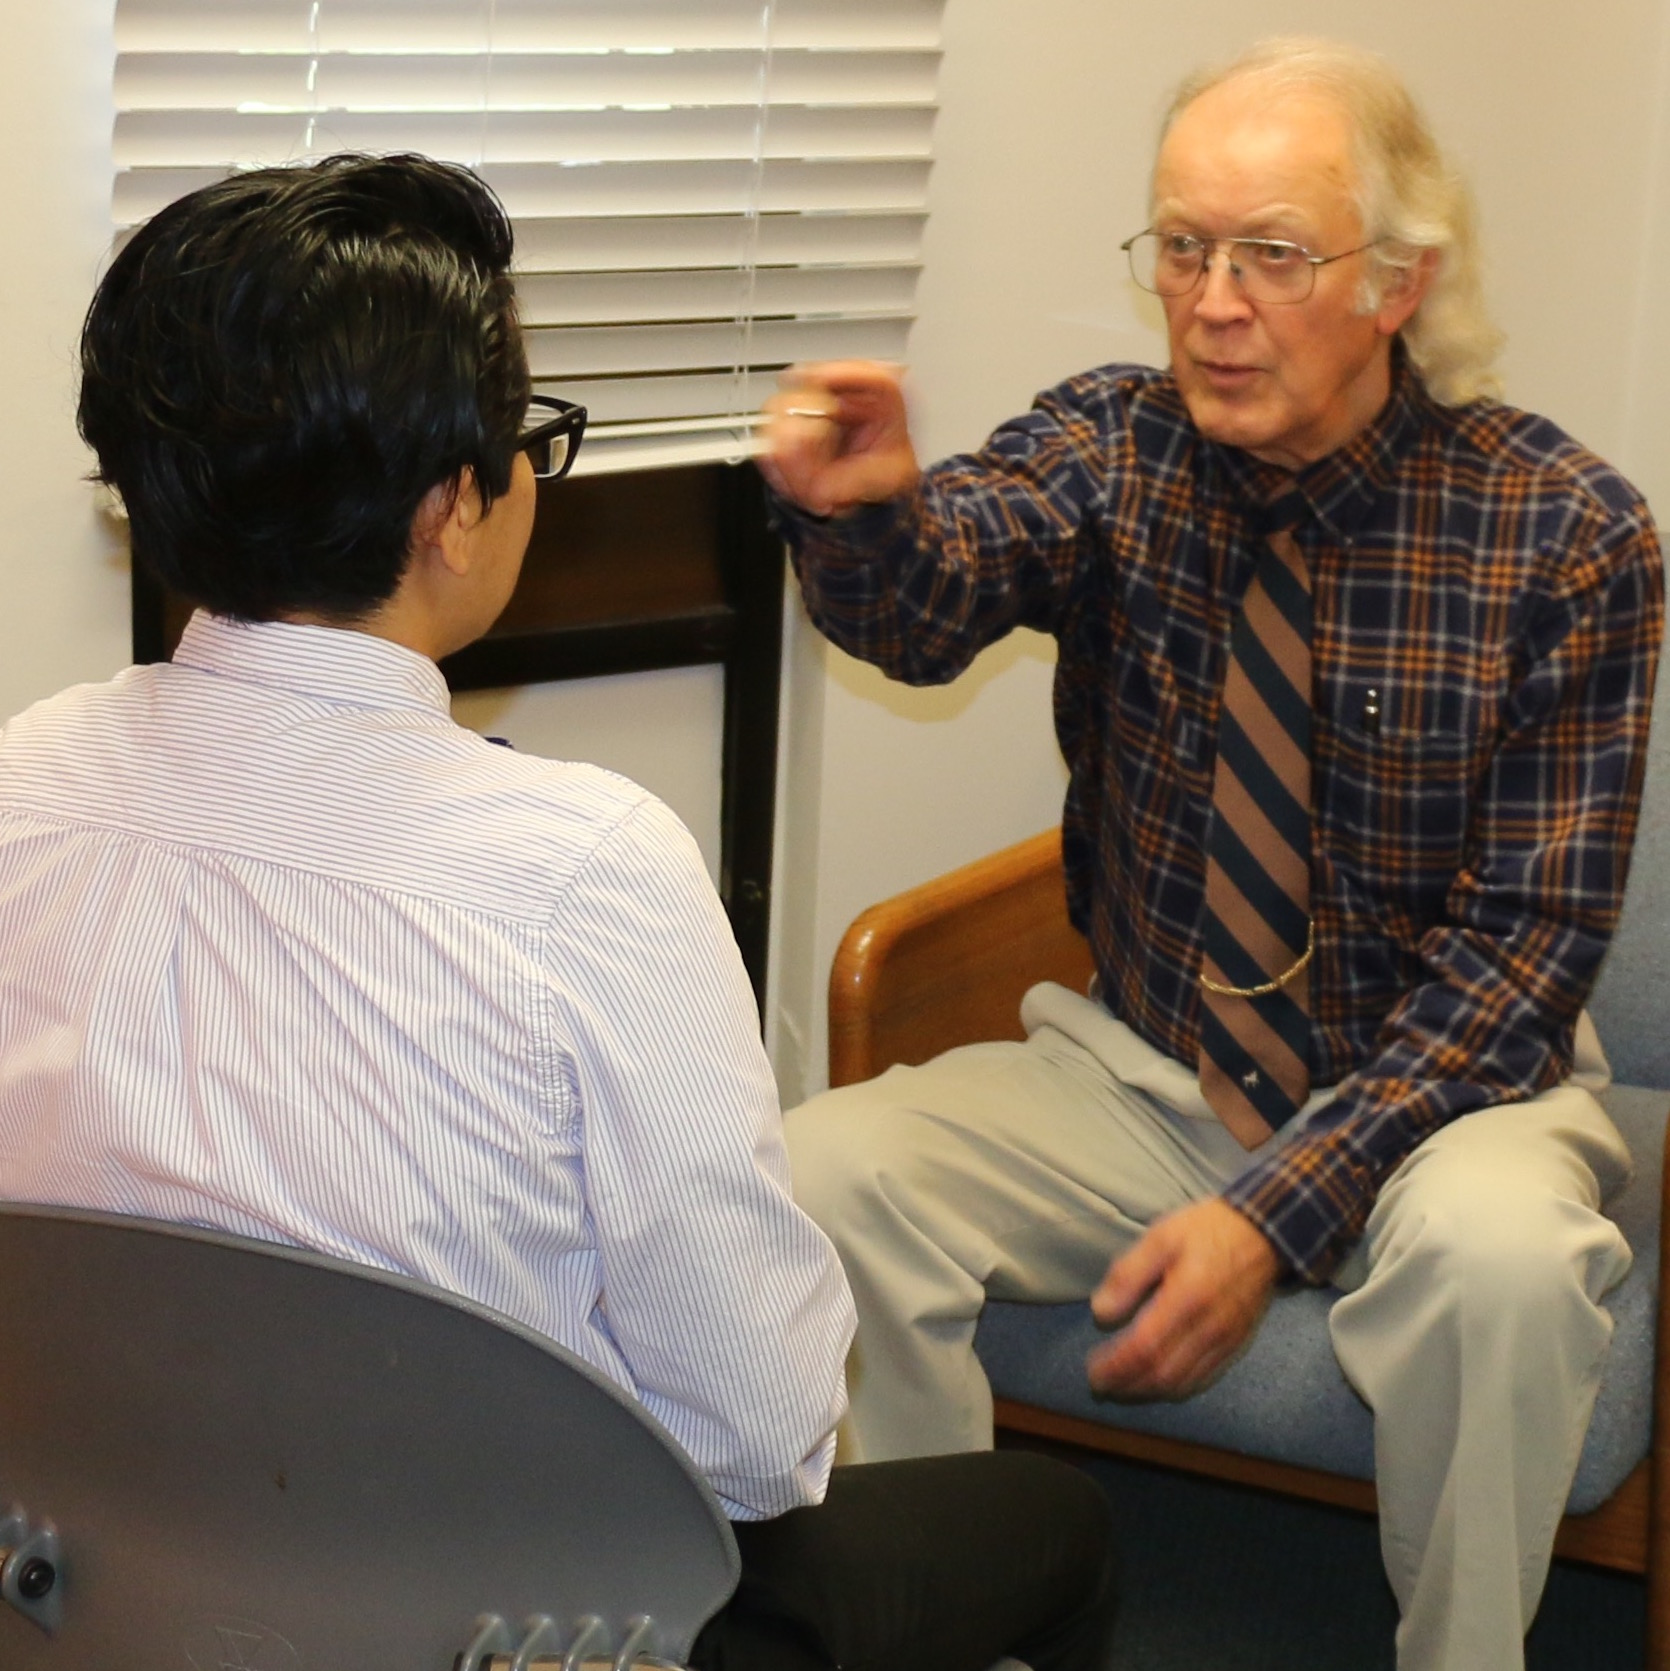 Larry Stevens demonstrates eye movement therapy